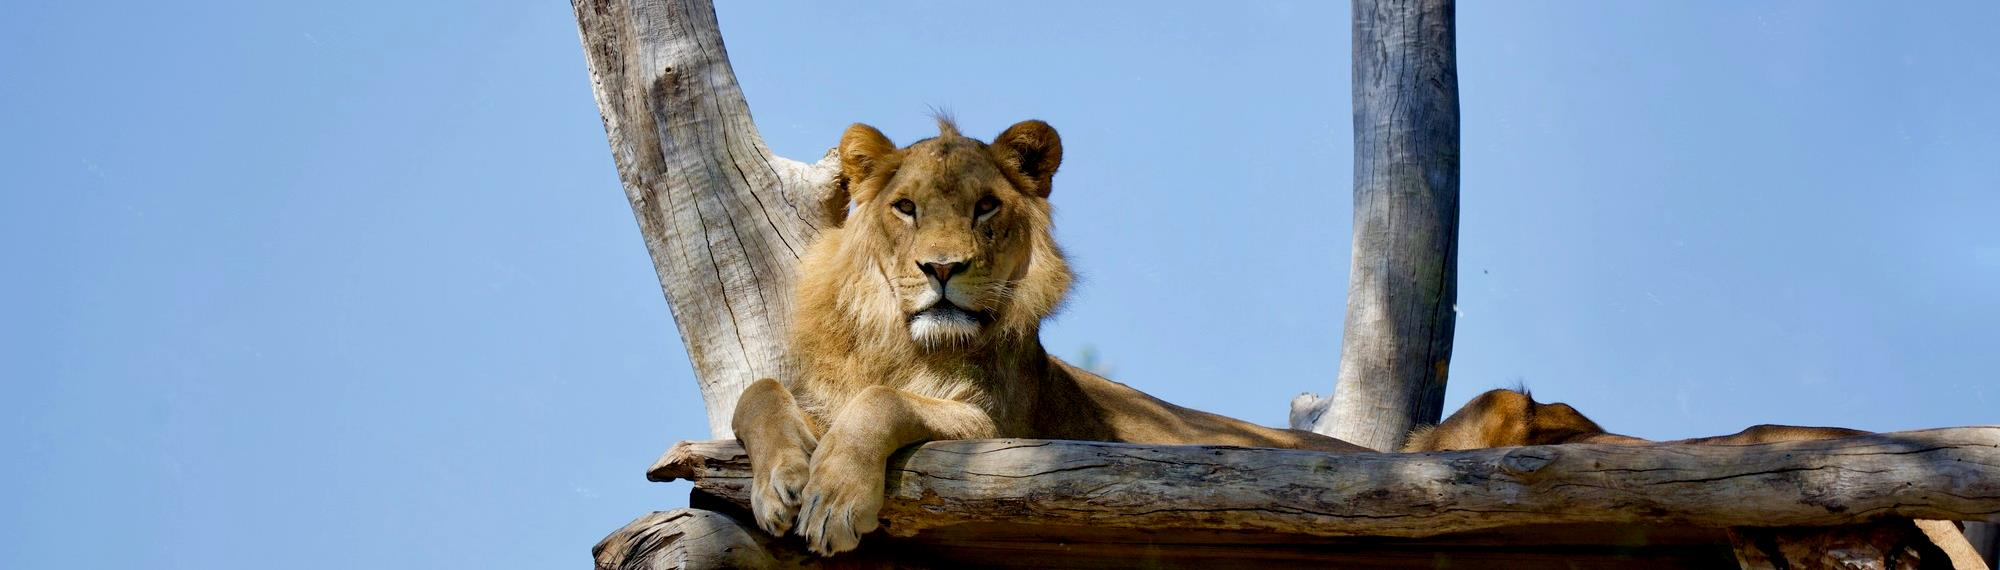 African Lion looking down while resting a wooden platform.